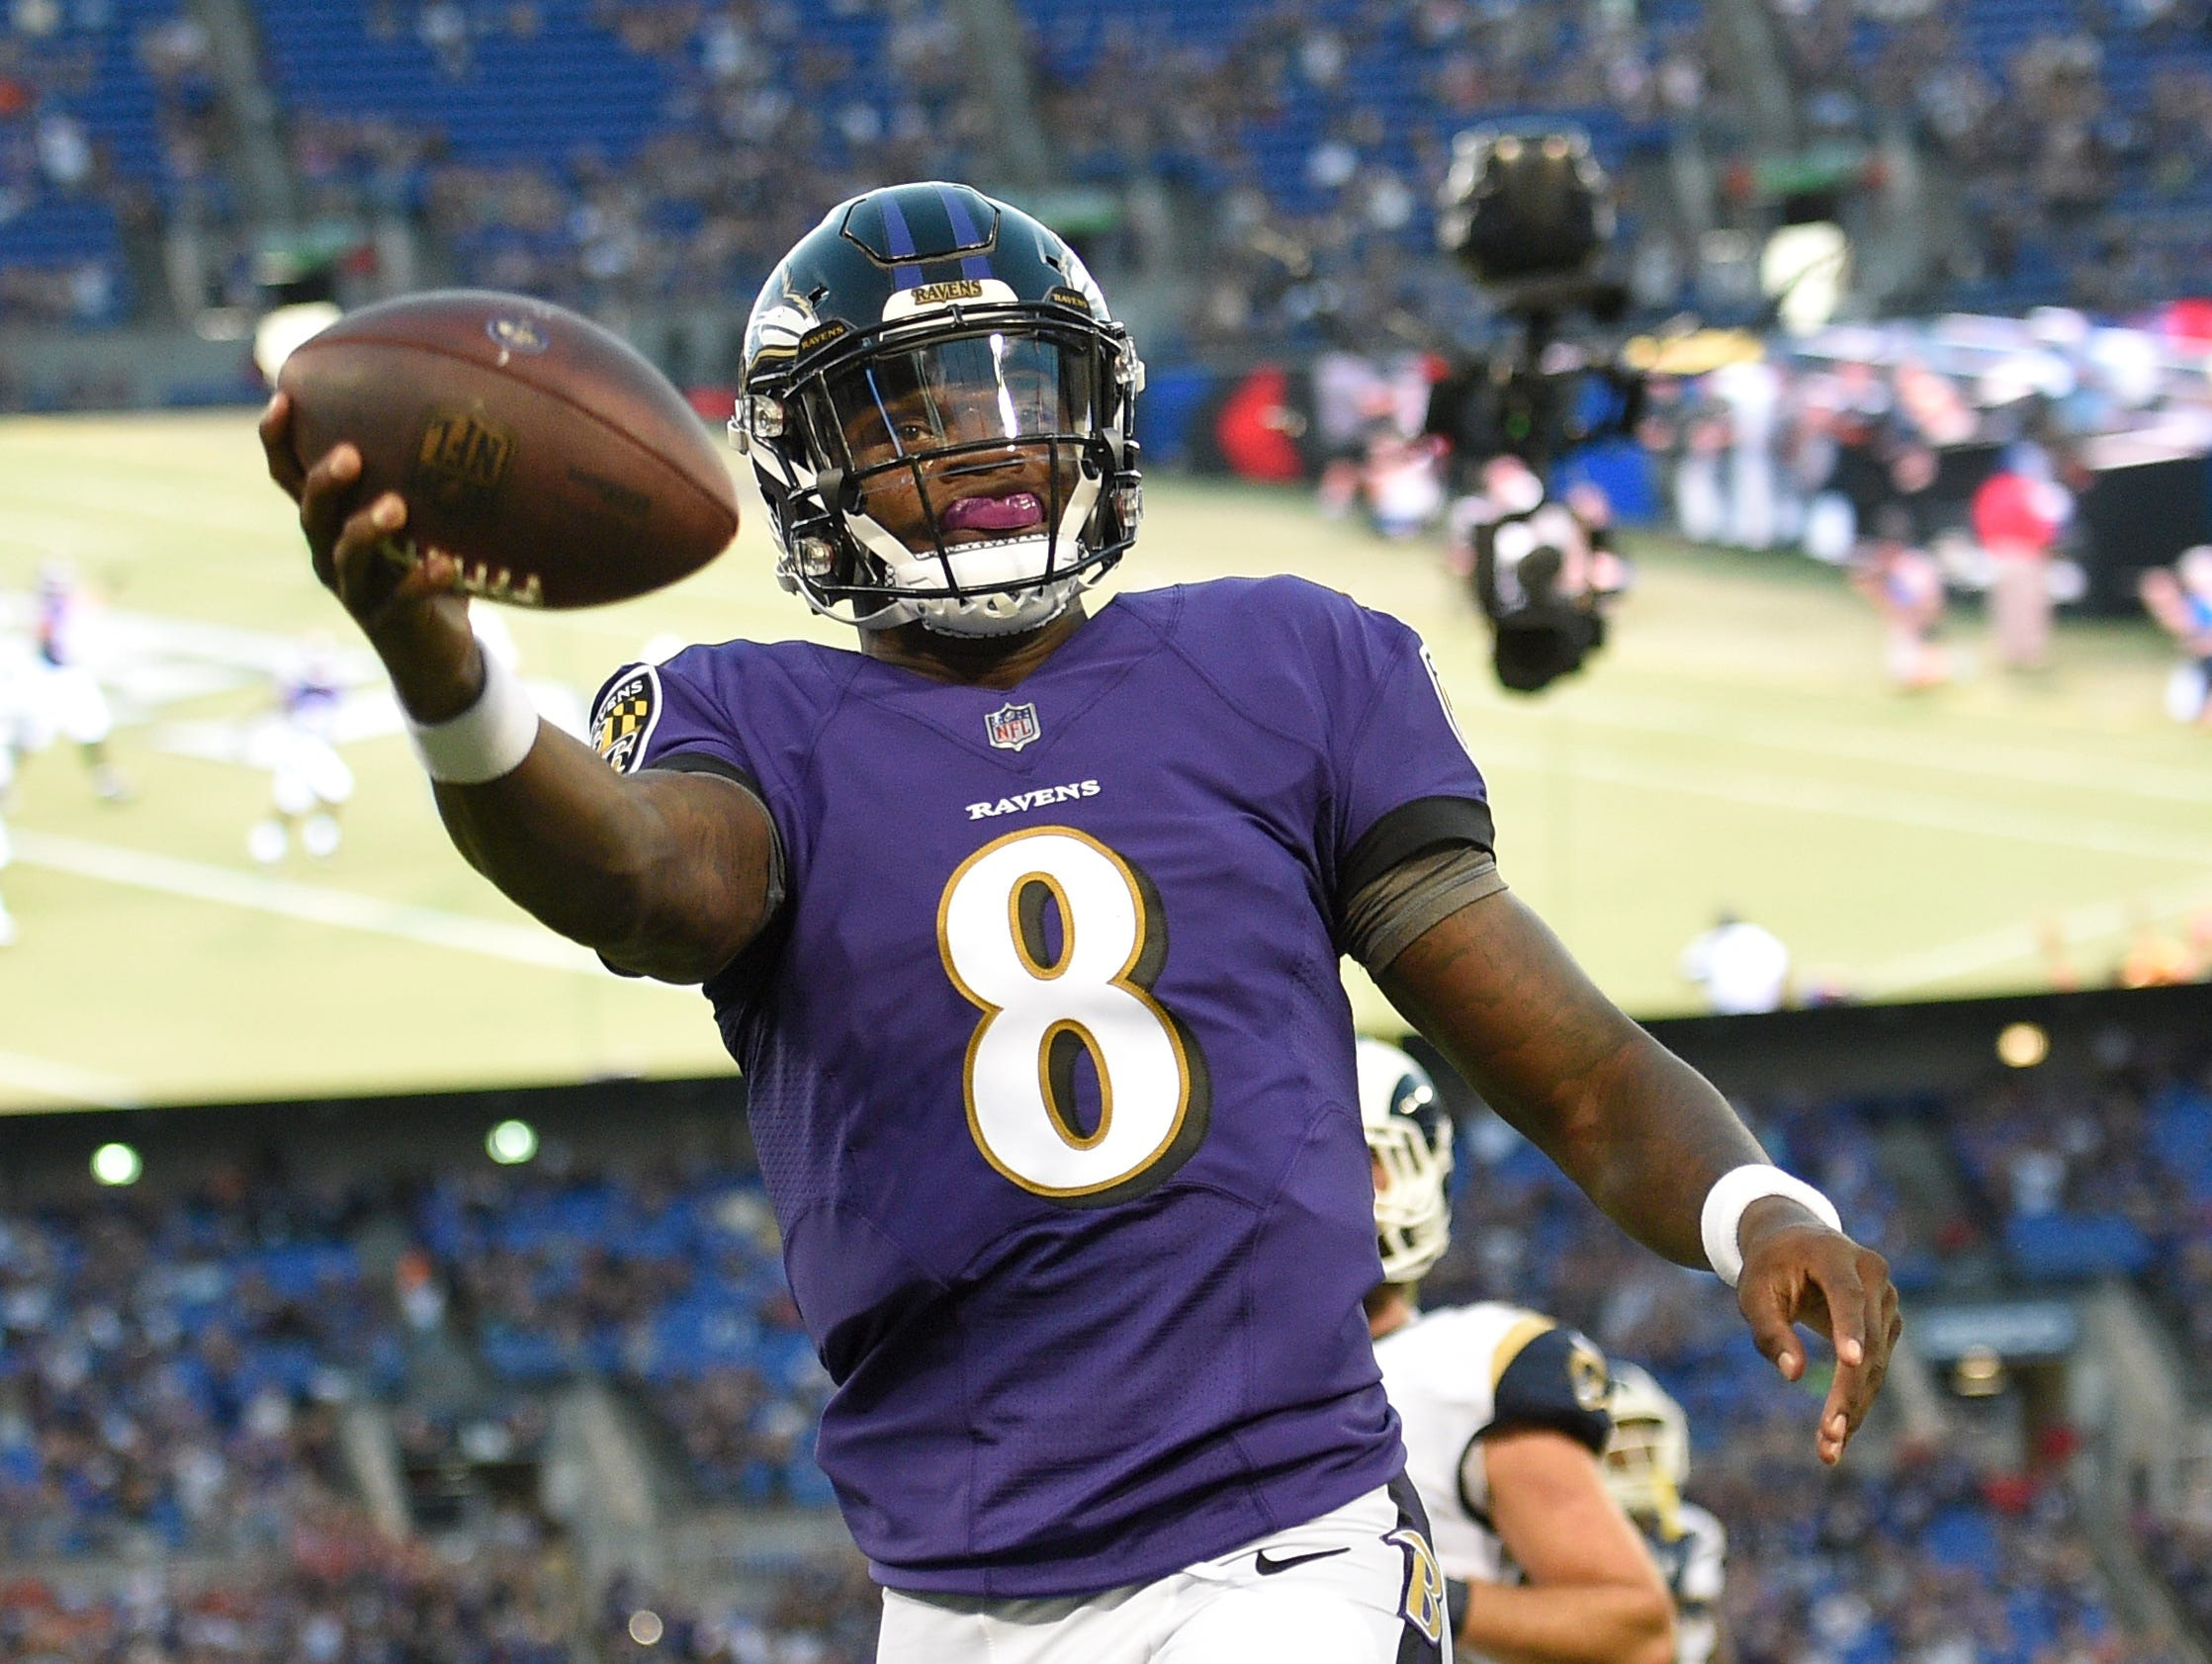 Baltimore Ravens quarterback Lamar Jackson celebrates after scoring a touchdown in the first half of a preseason NFL football game against the Los Angeles Rams, Thursday, Aug. 9, 2018, in Baltimore. (AP Photo/Nick Wass)